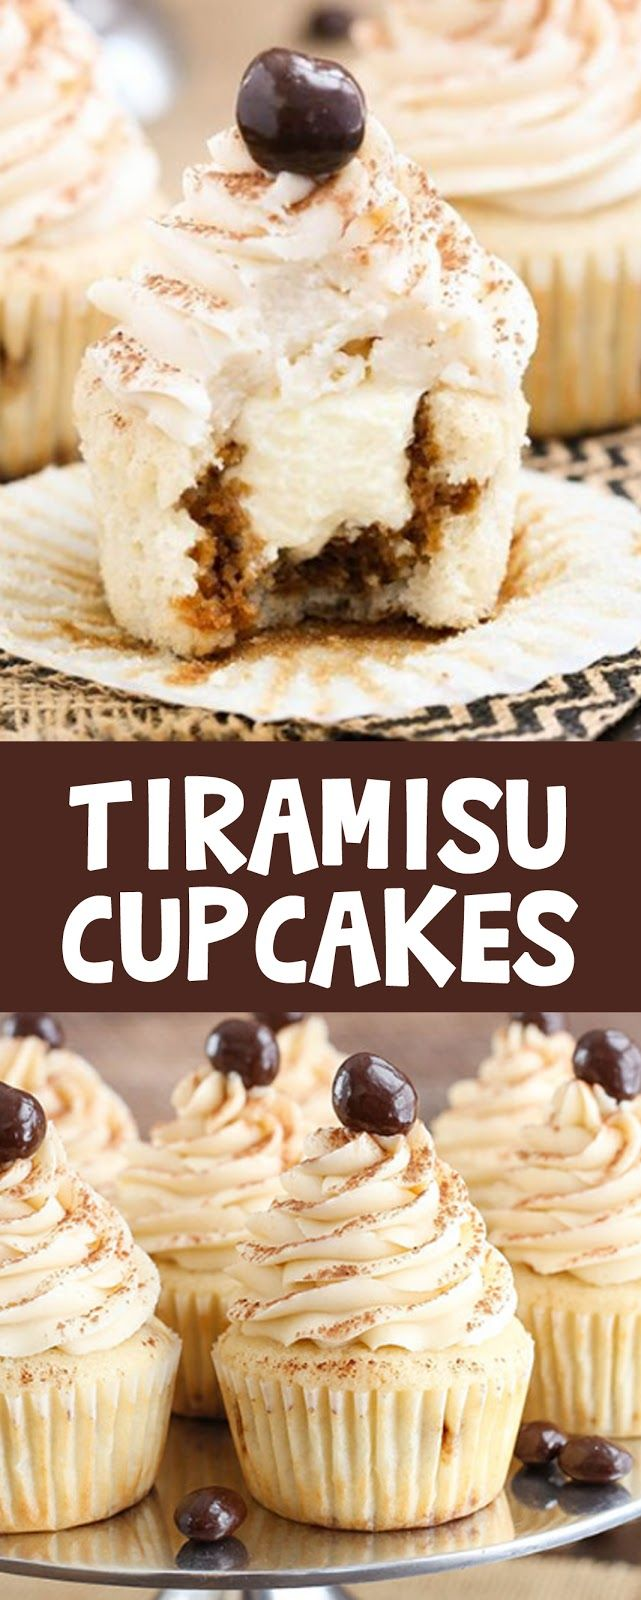 TIRAMISU CUPCAKES – House Recipes & Home Decor